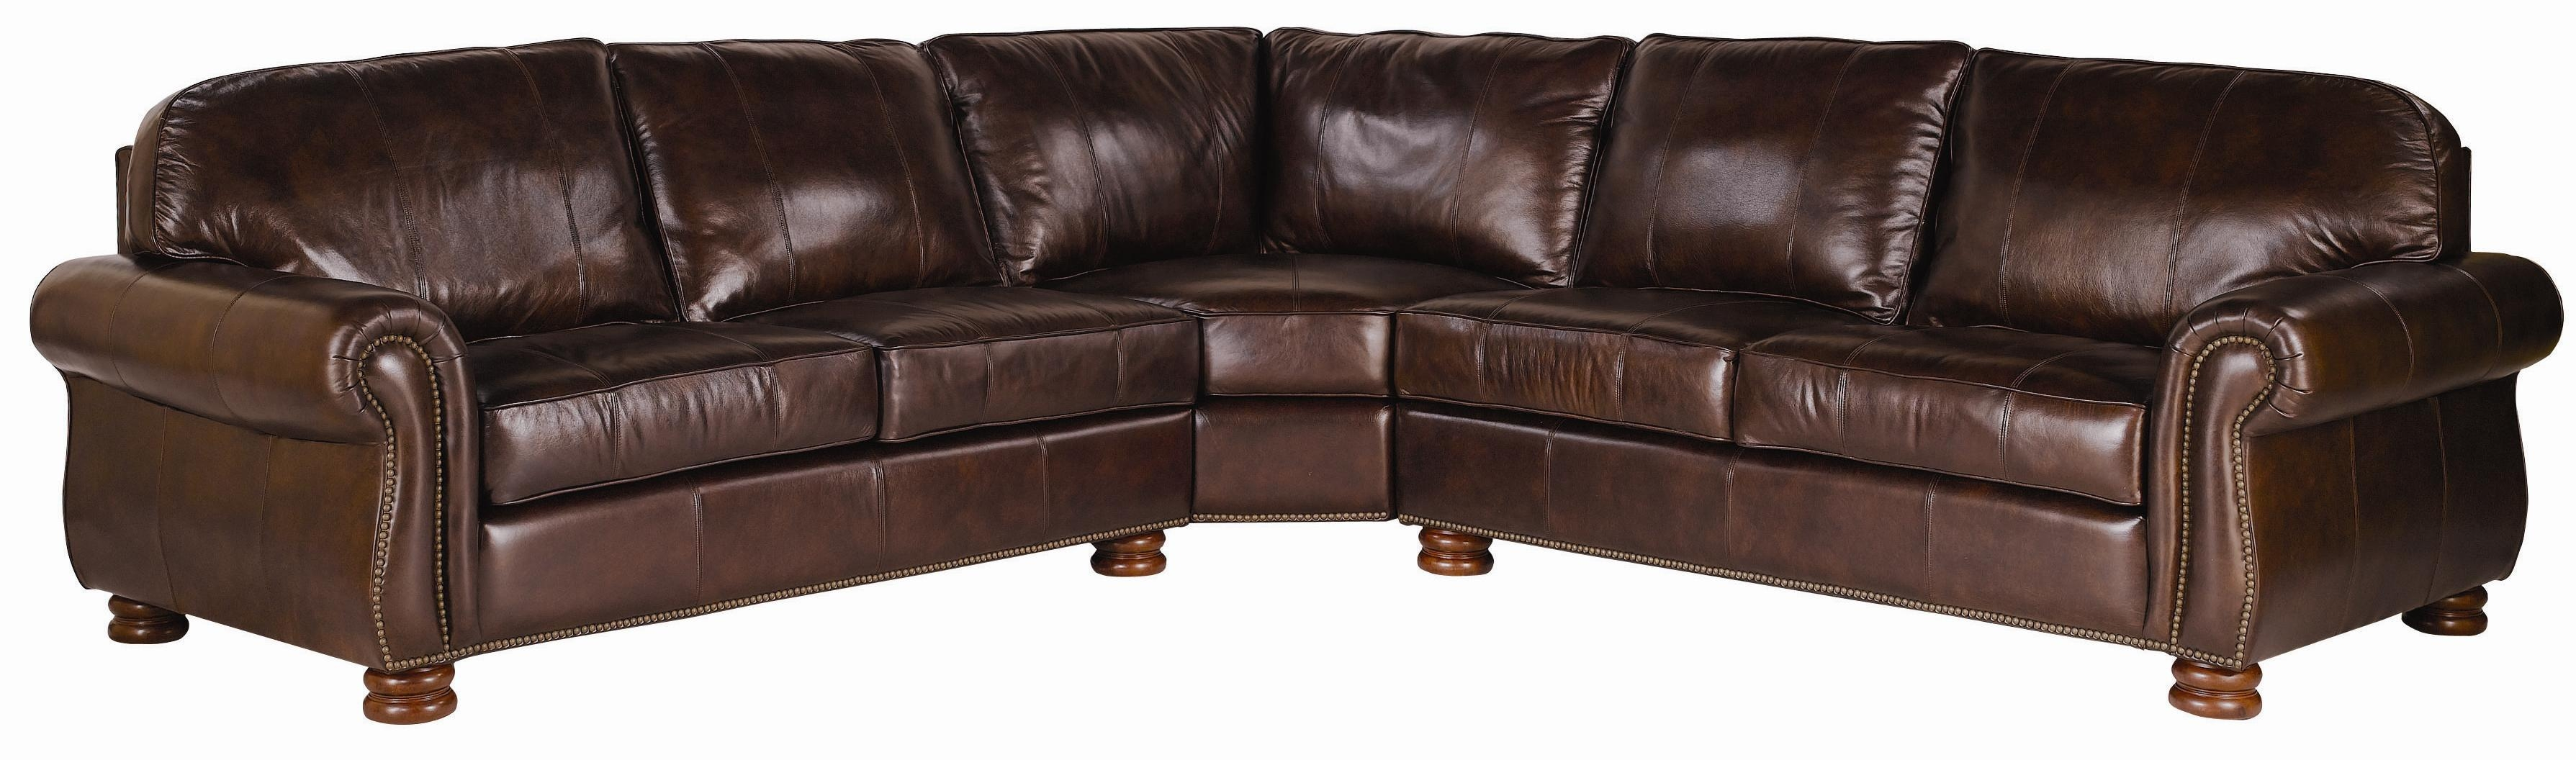 Featured Image of Thomasville Leather Sectionals